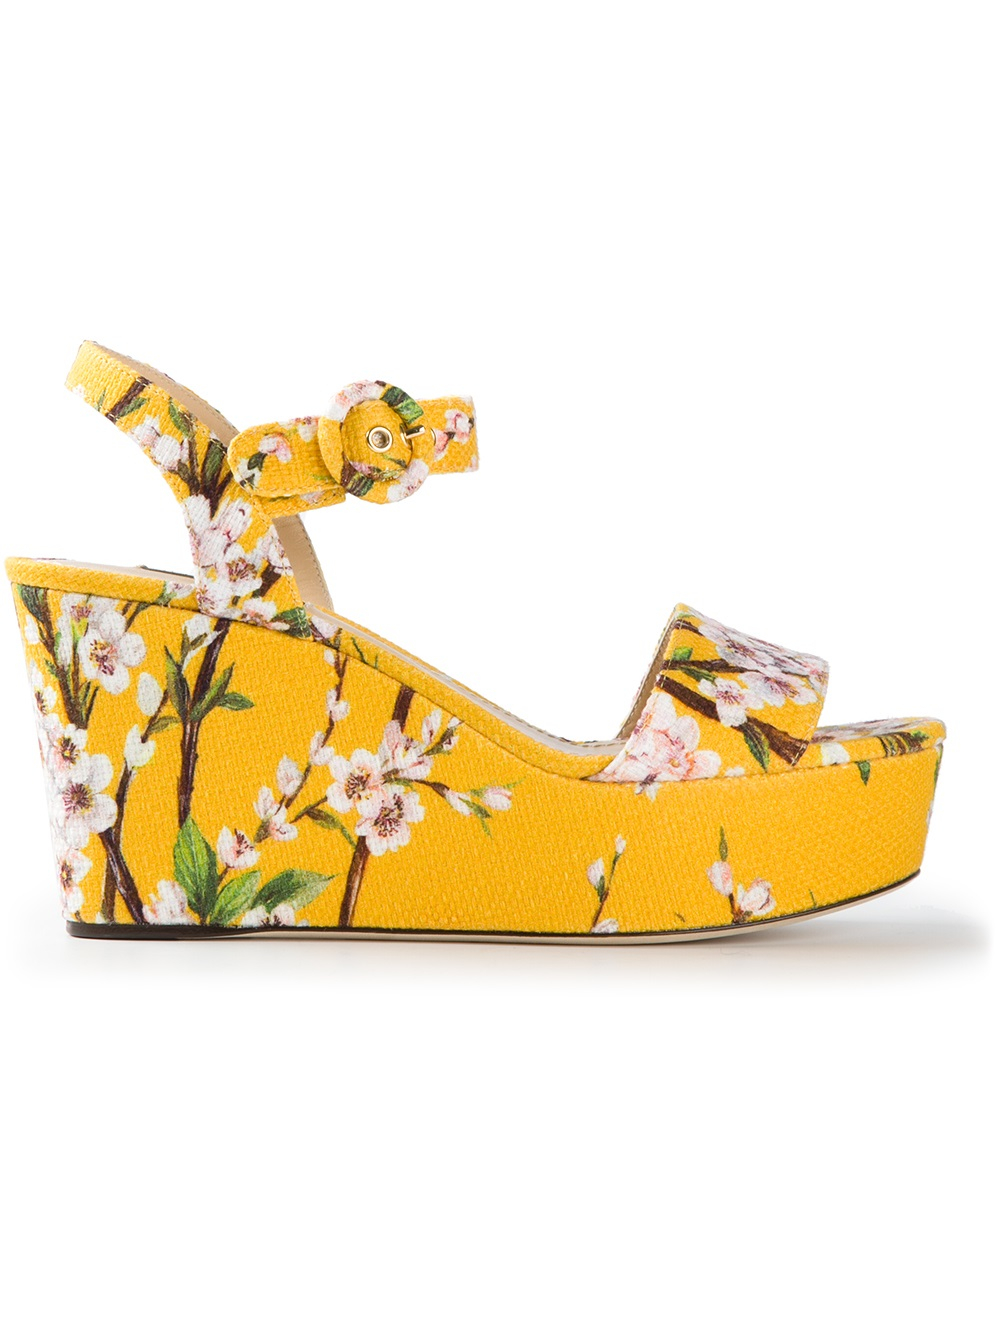 62a3695d4a1 Lyst - Dolce   Gabbana Floral Print Wedge Sandal in Yellow